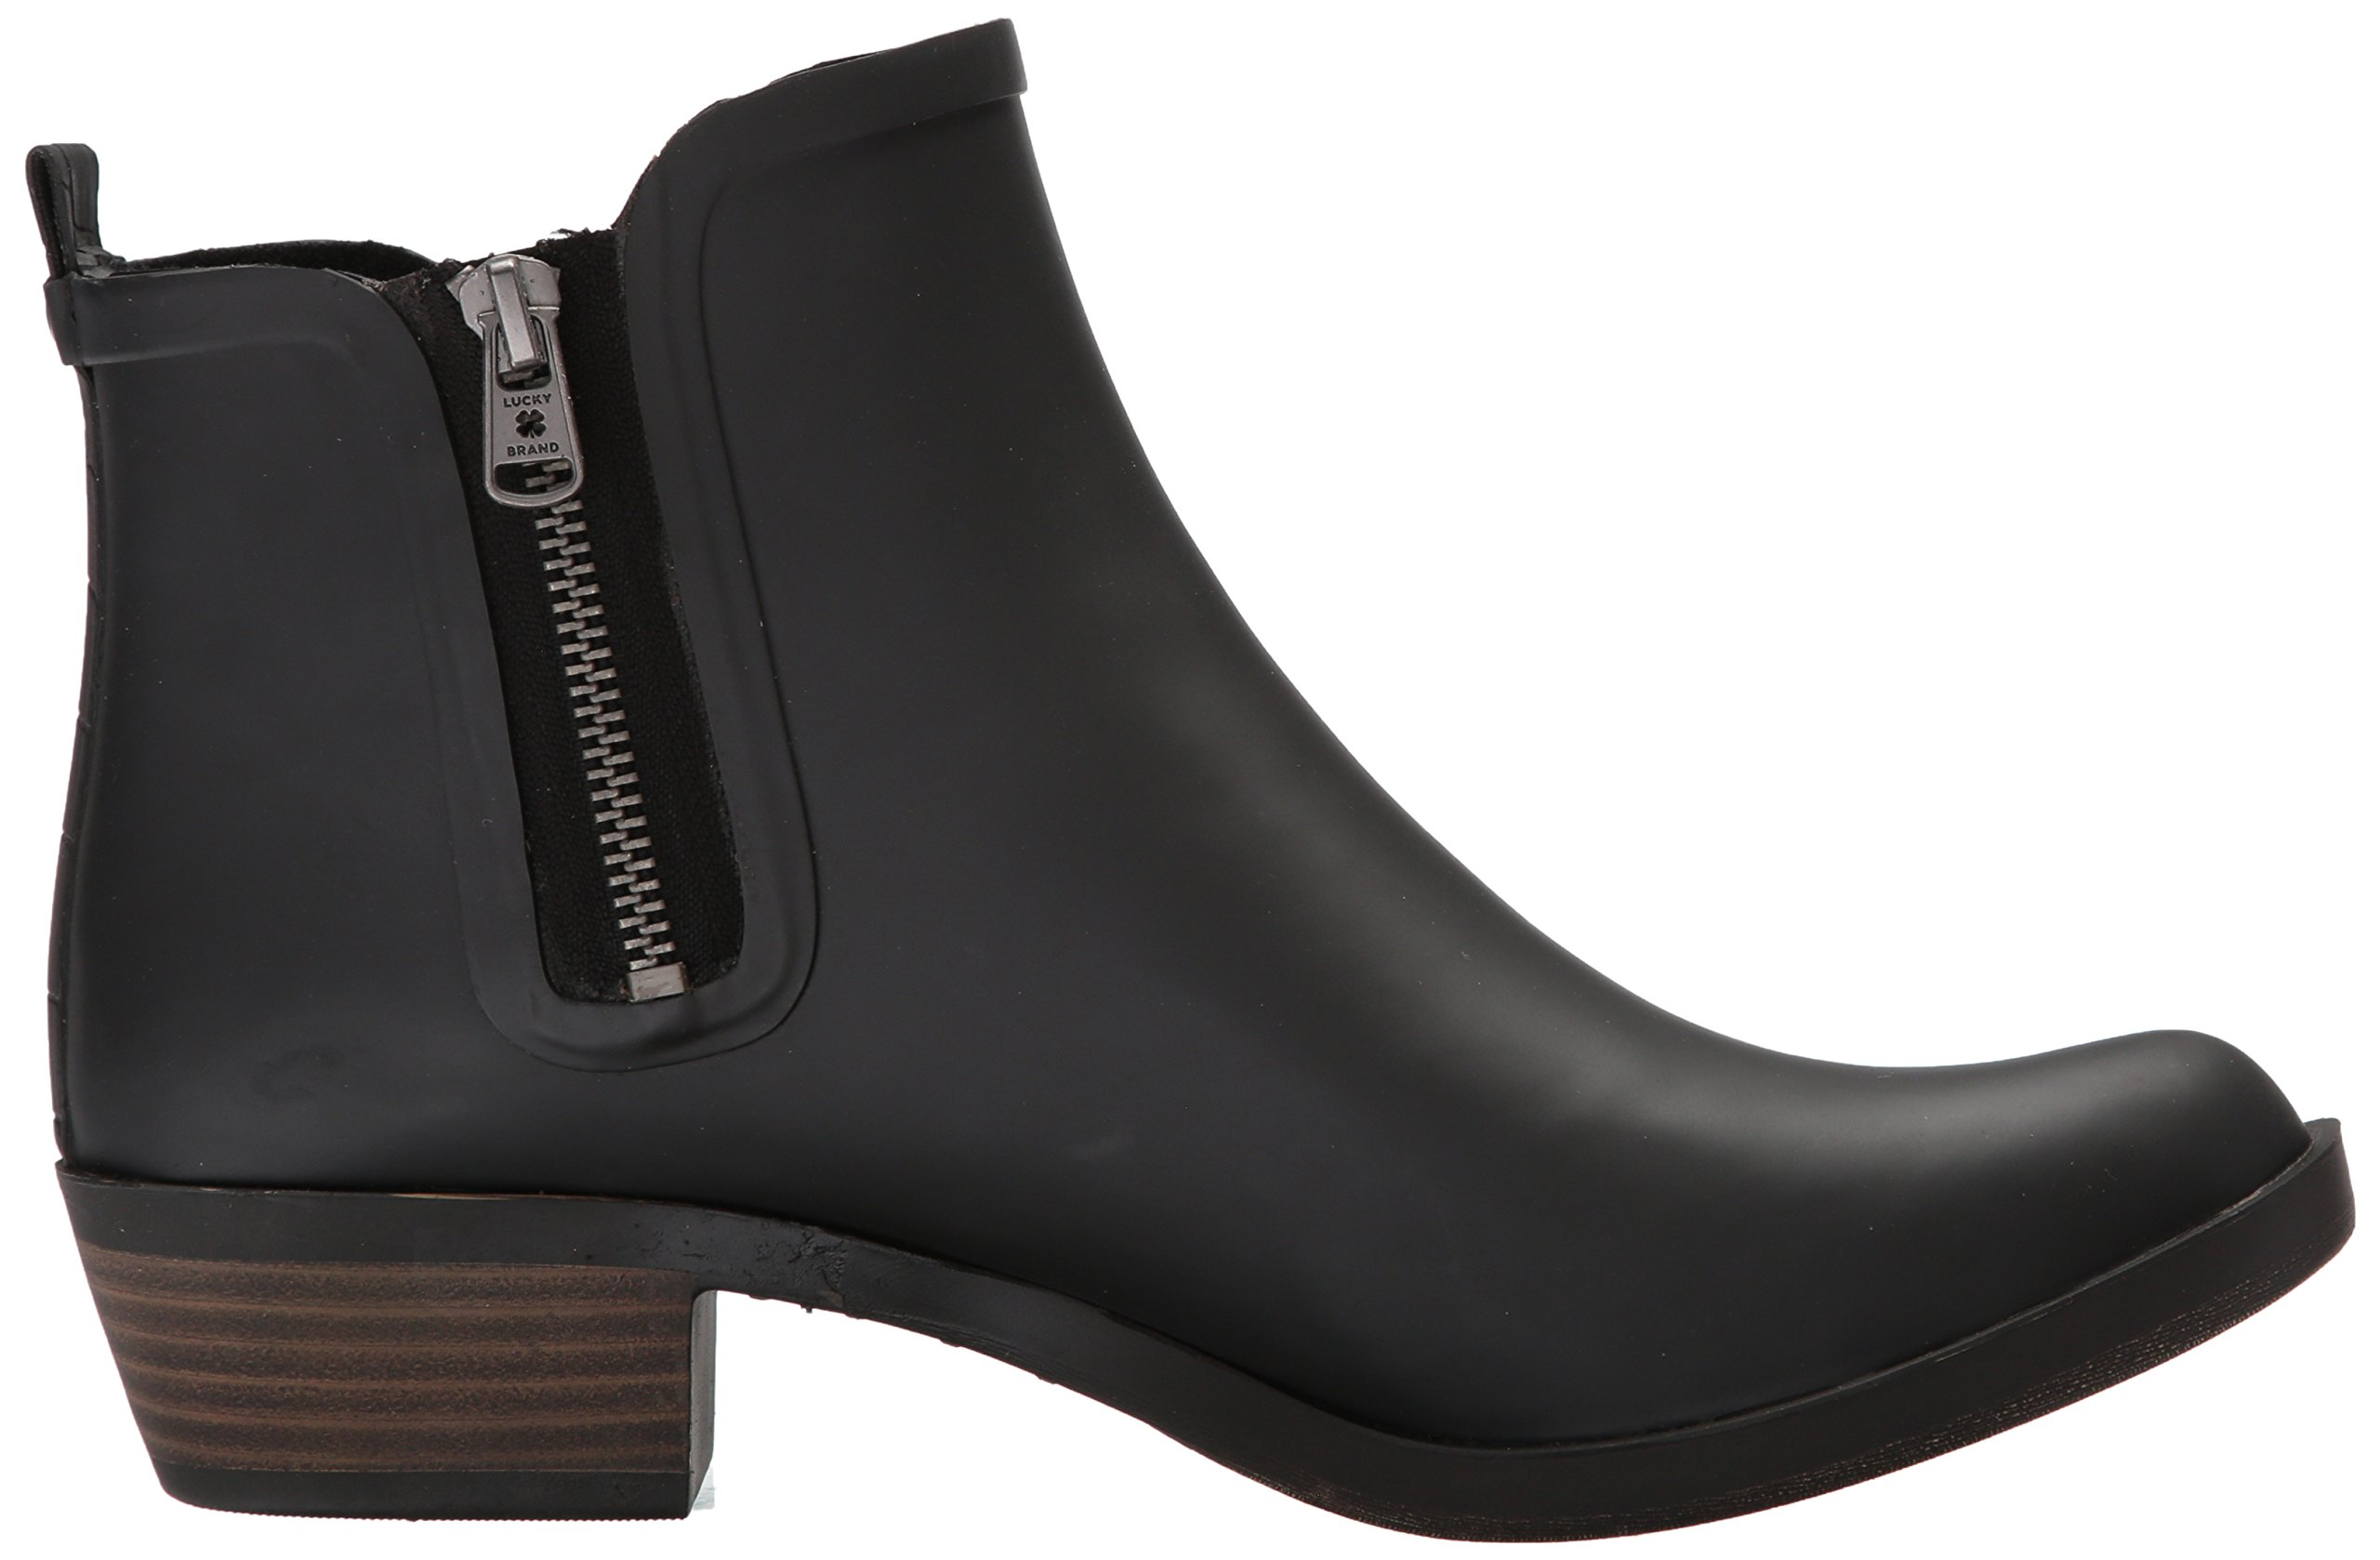 Lucky Brand Women's Baselrain Rain Boot, Black Crocodile, 10 Medium US by Lucky Brand (Image #7)